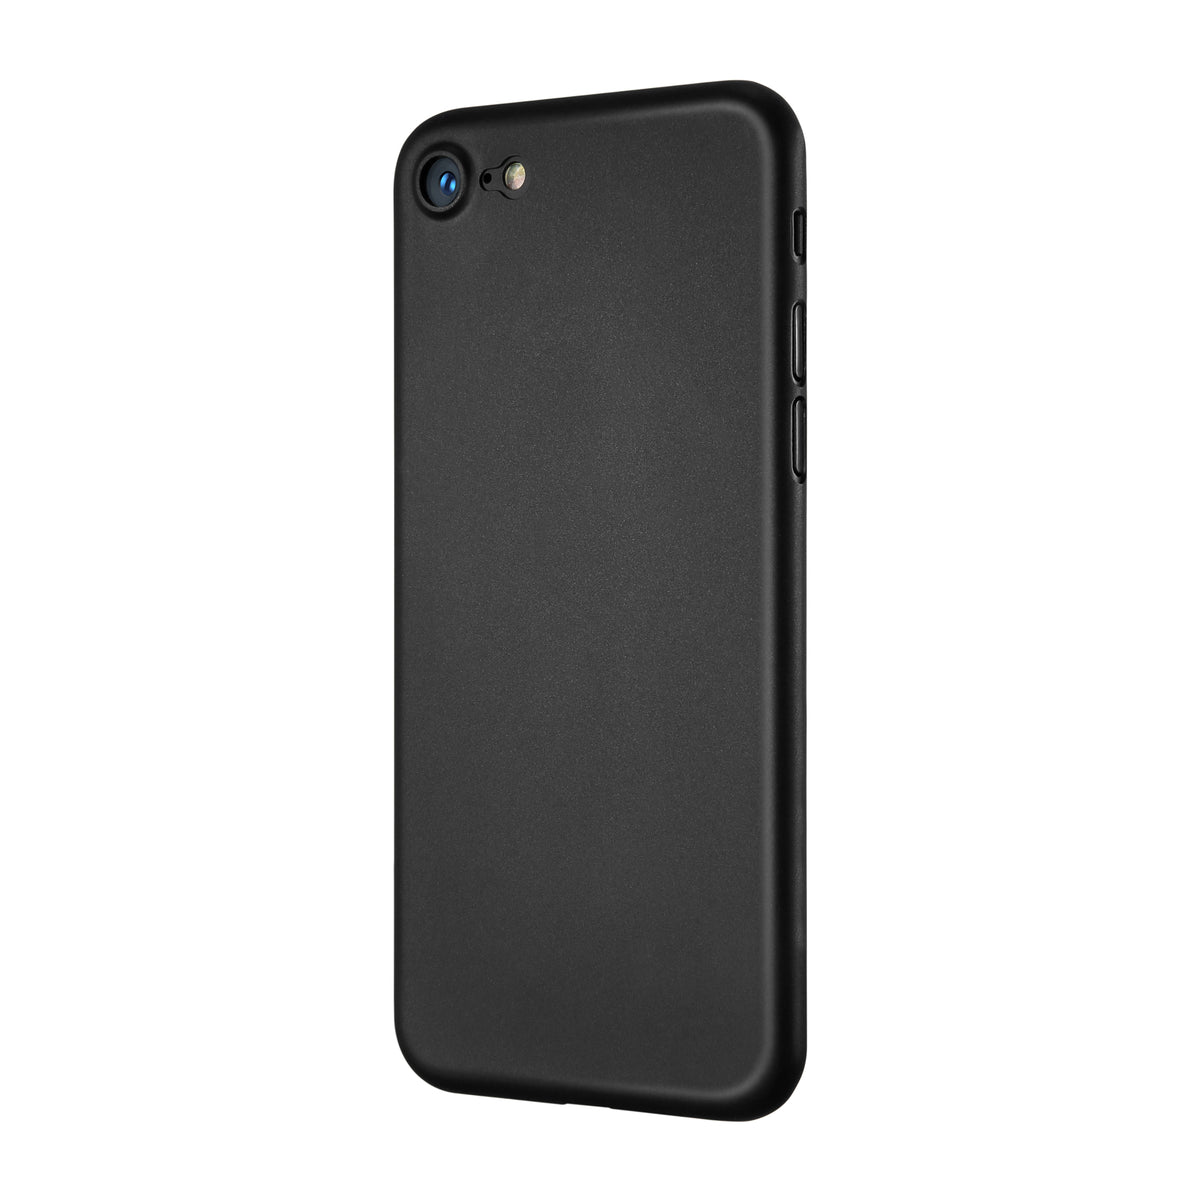 Go Original iPhone 7 Slim Case